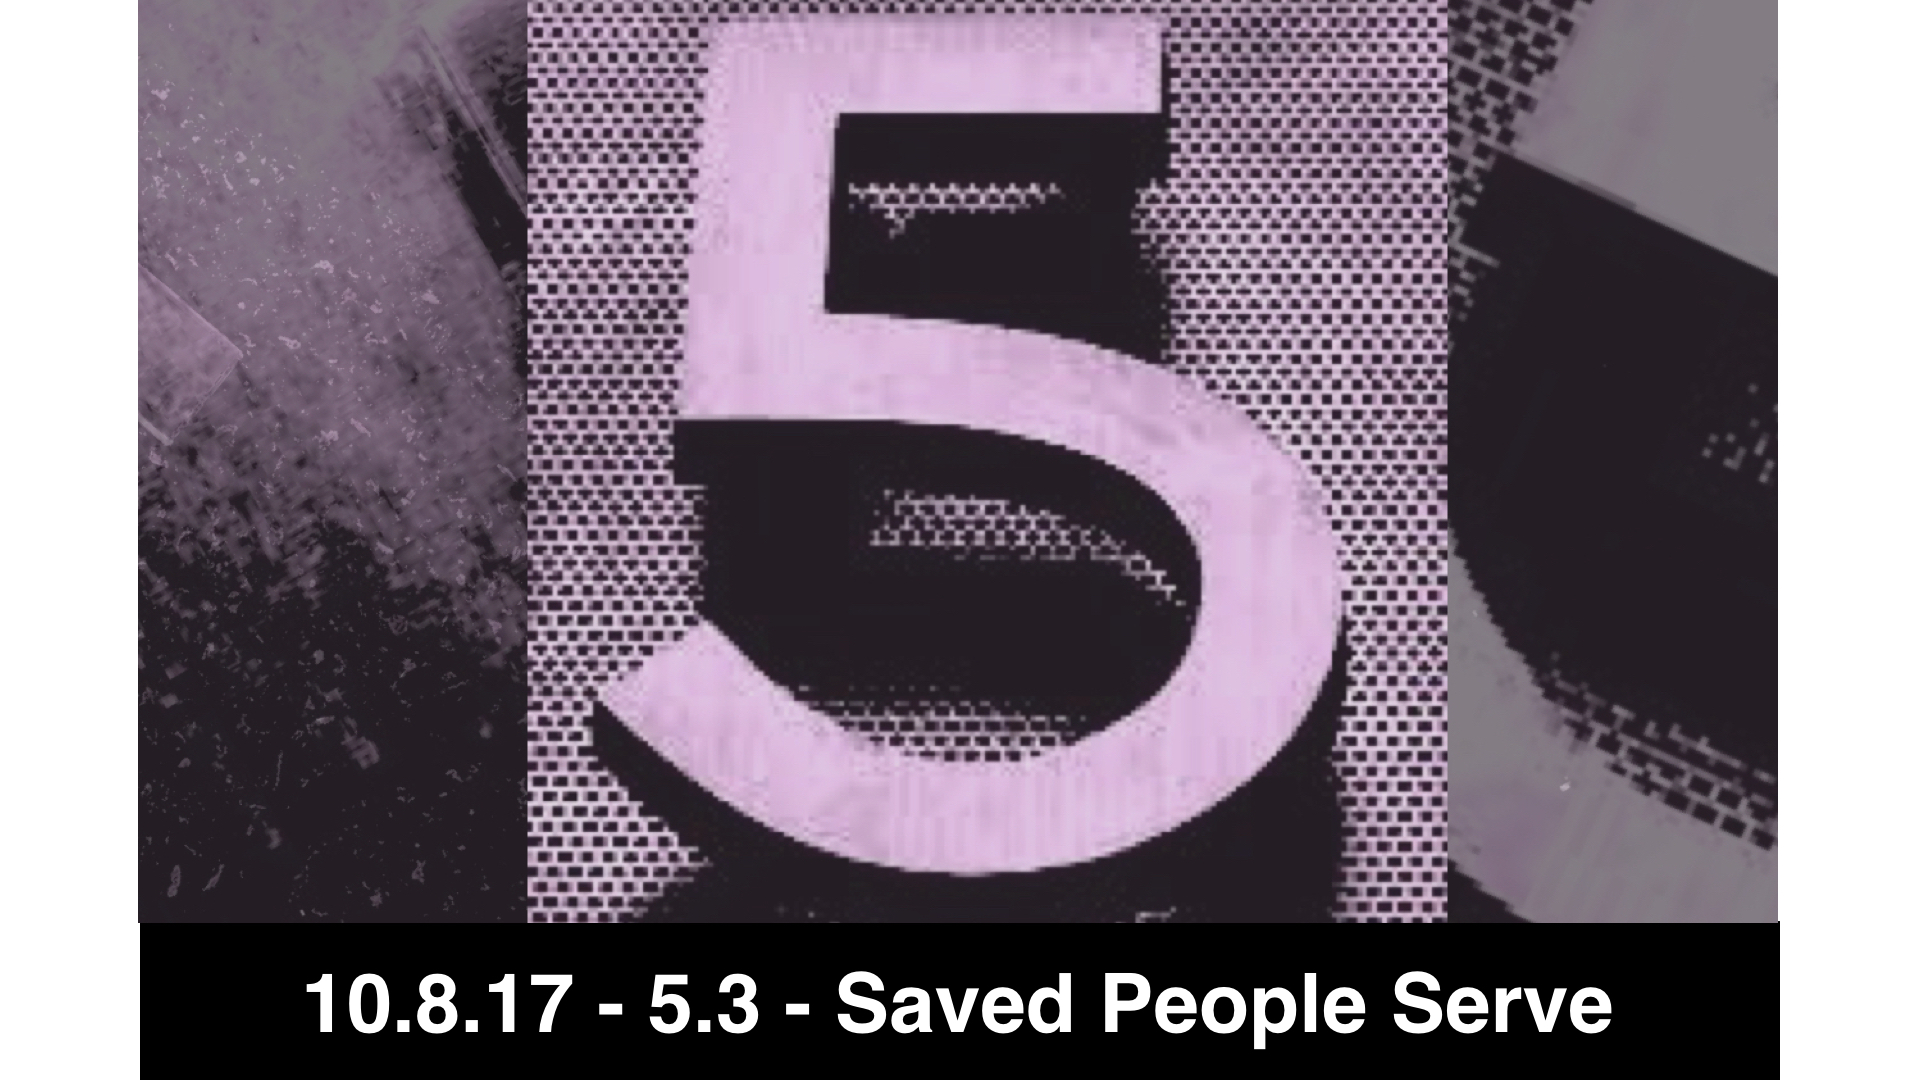 10.15.17 5.3 - Saved People Serve People